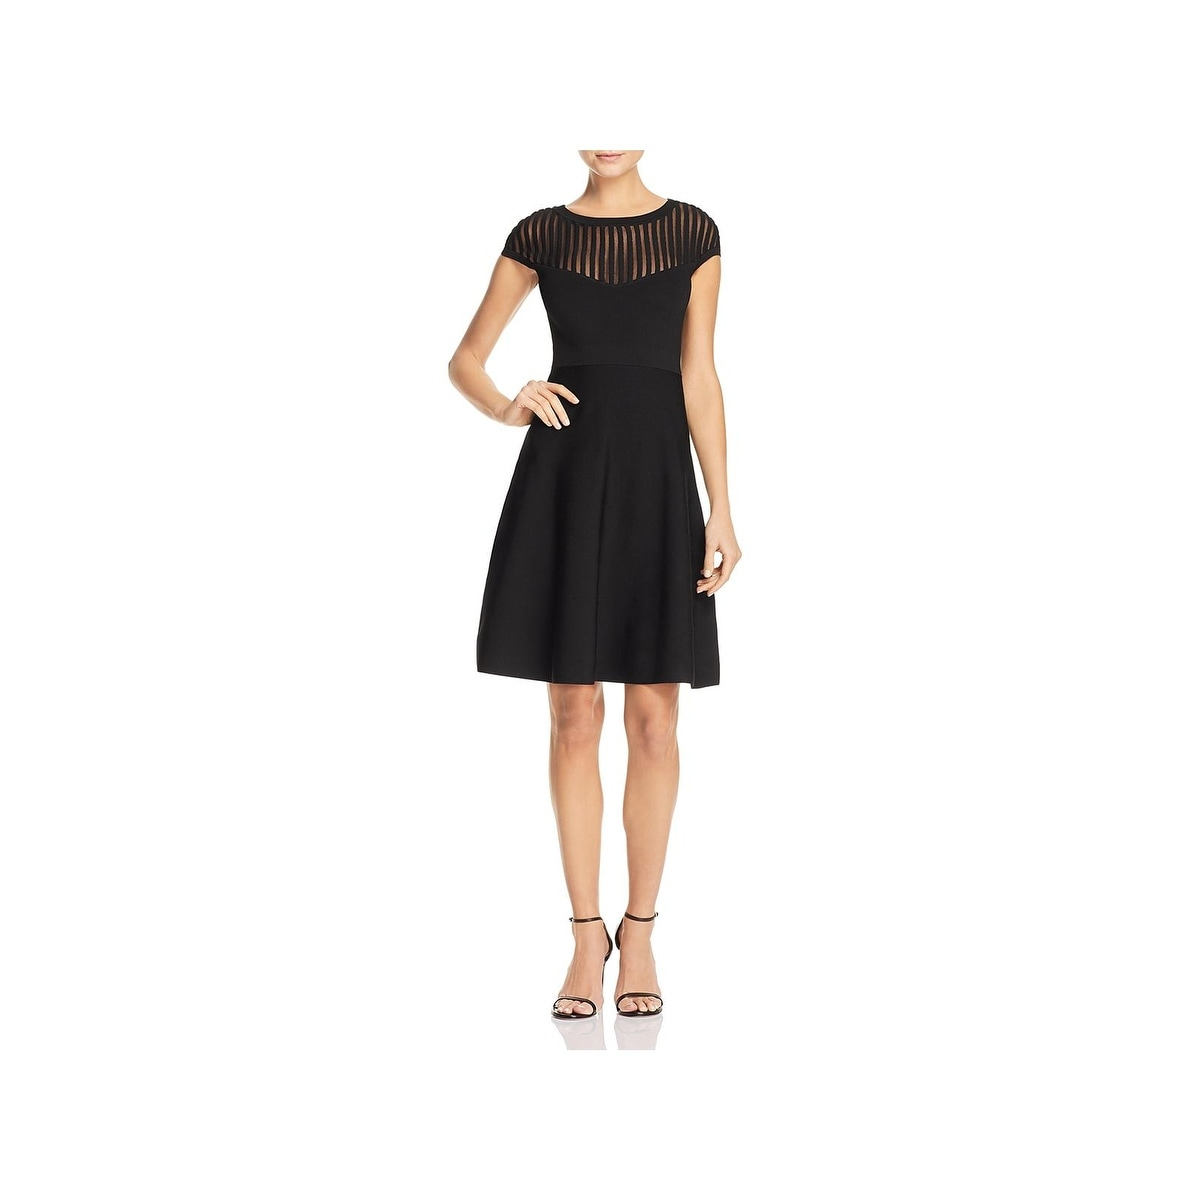 0a25351ac83 French Connection Dresses | Find Great Women's Clothing Deals Shopping at  Overstock